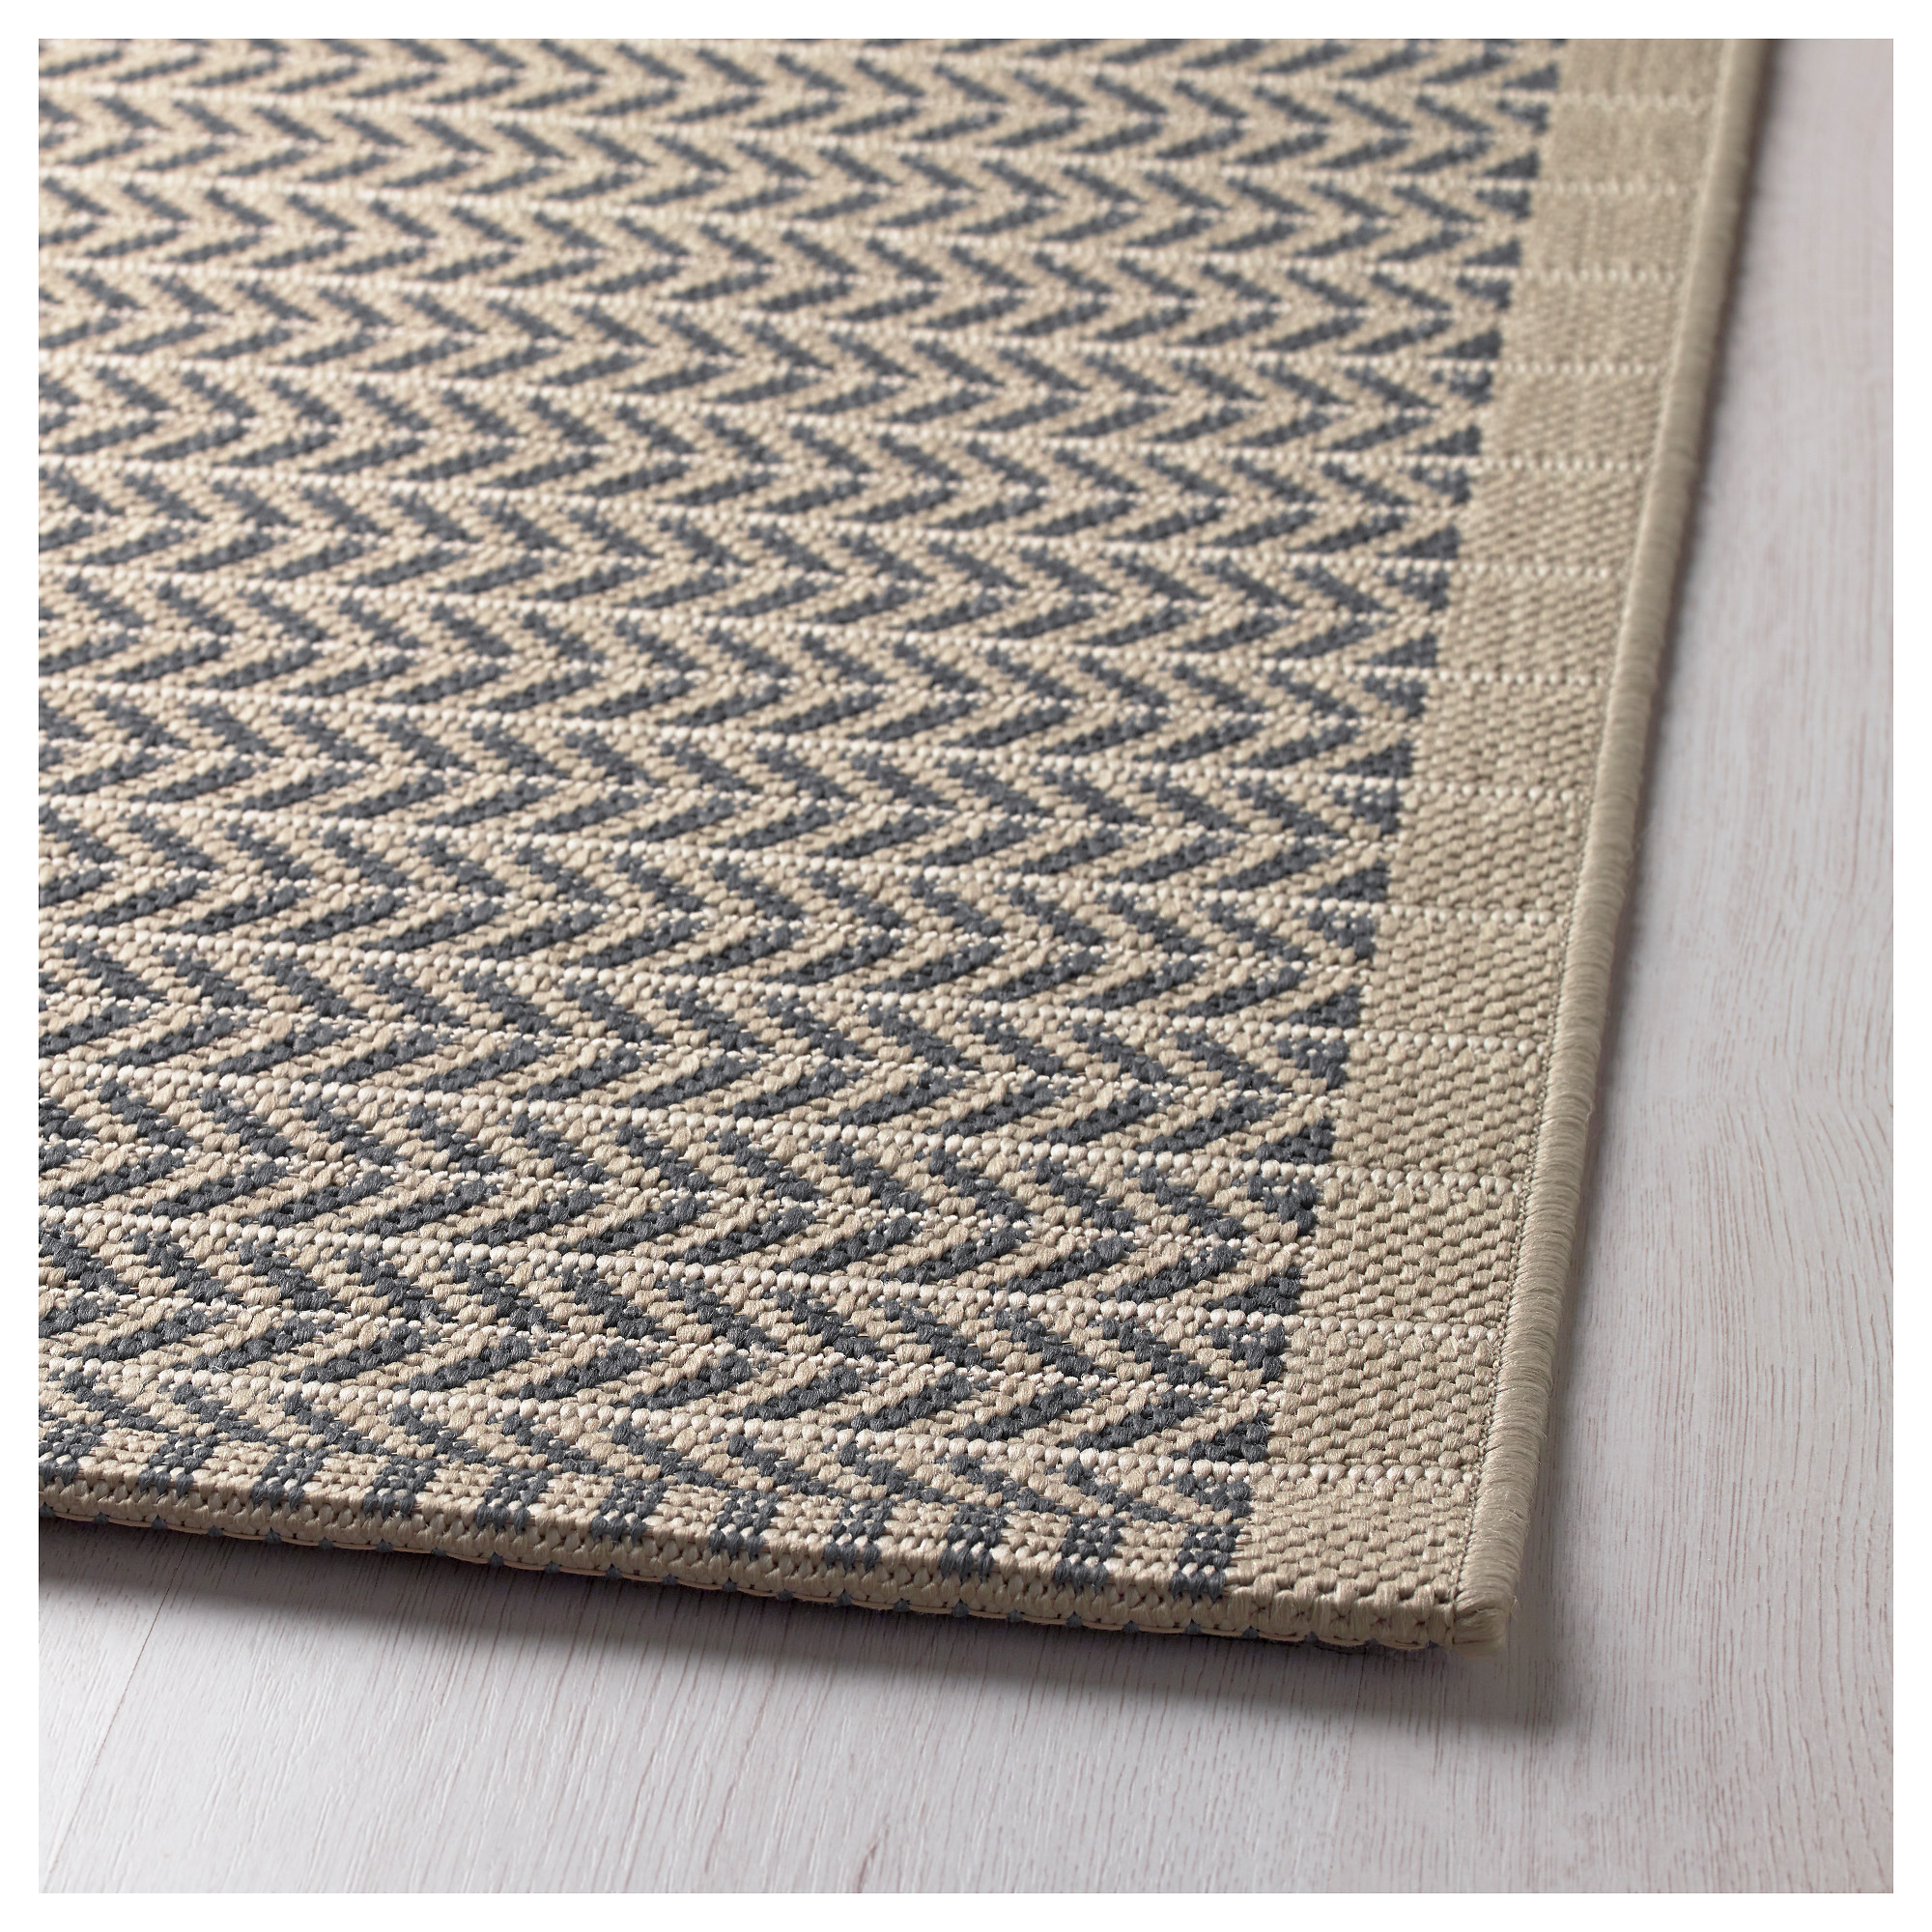 Ikea Lobbak Rug Flatwoven In Outdoor Ideal In Your Living